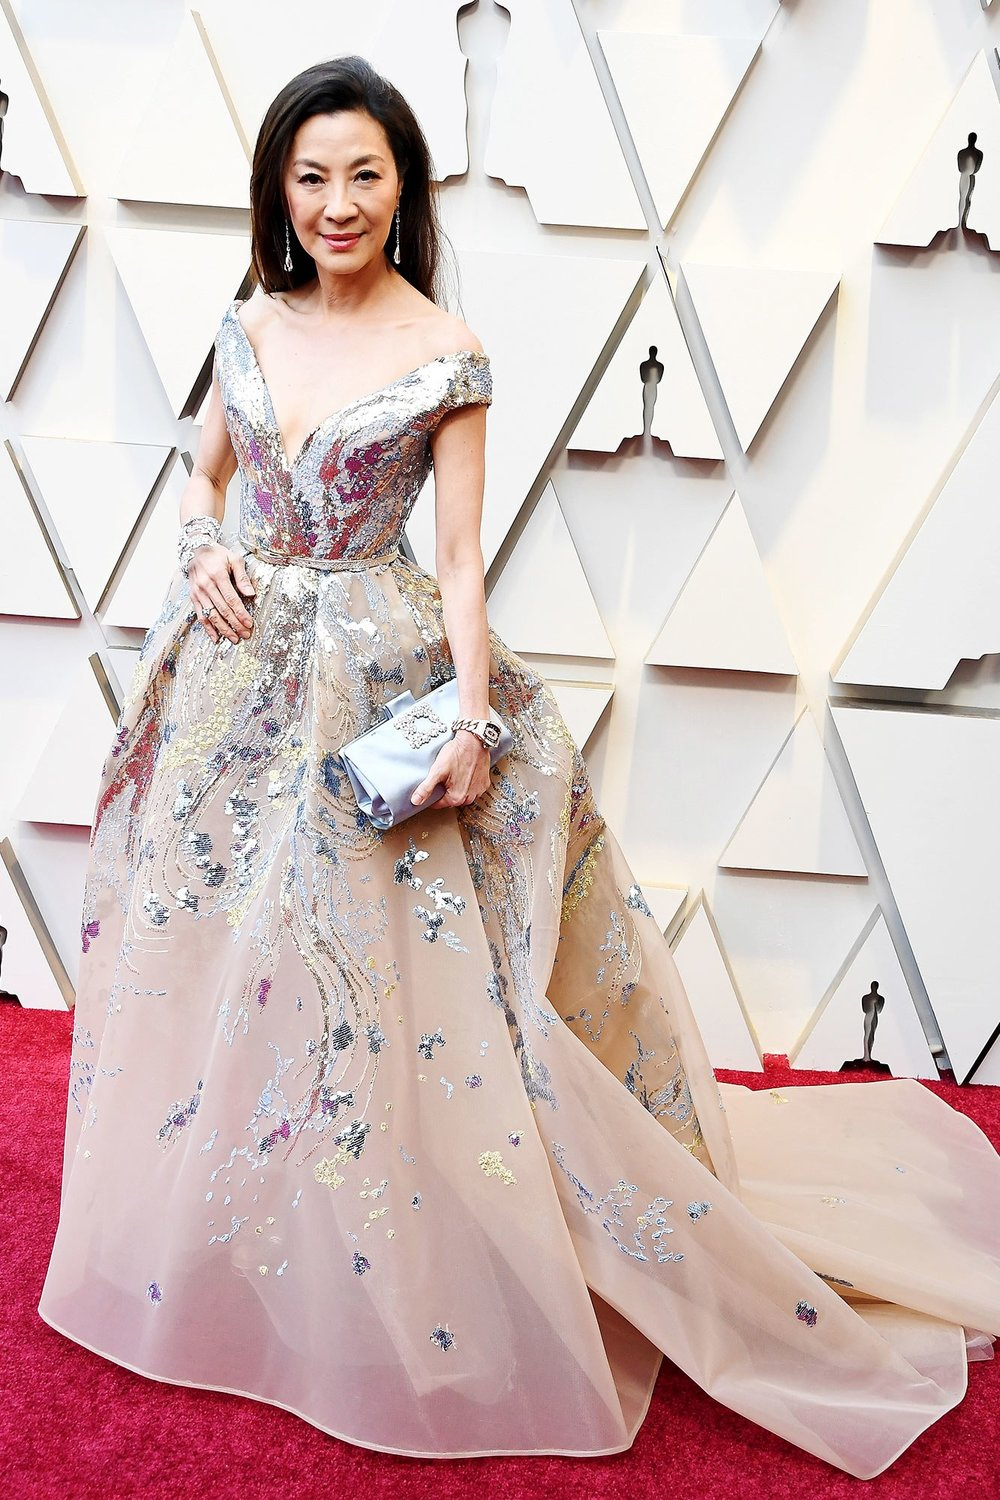 MICHELLE YEOH - ELIE SAAB: This is a classic Oscars dress but the appliqué and the off the shoulder details make it special.